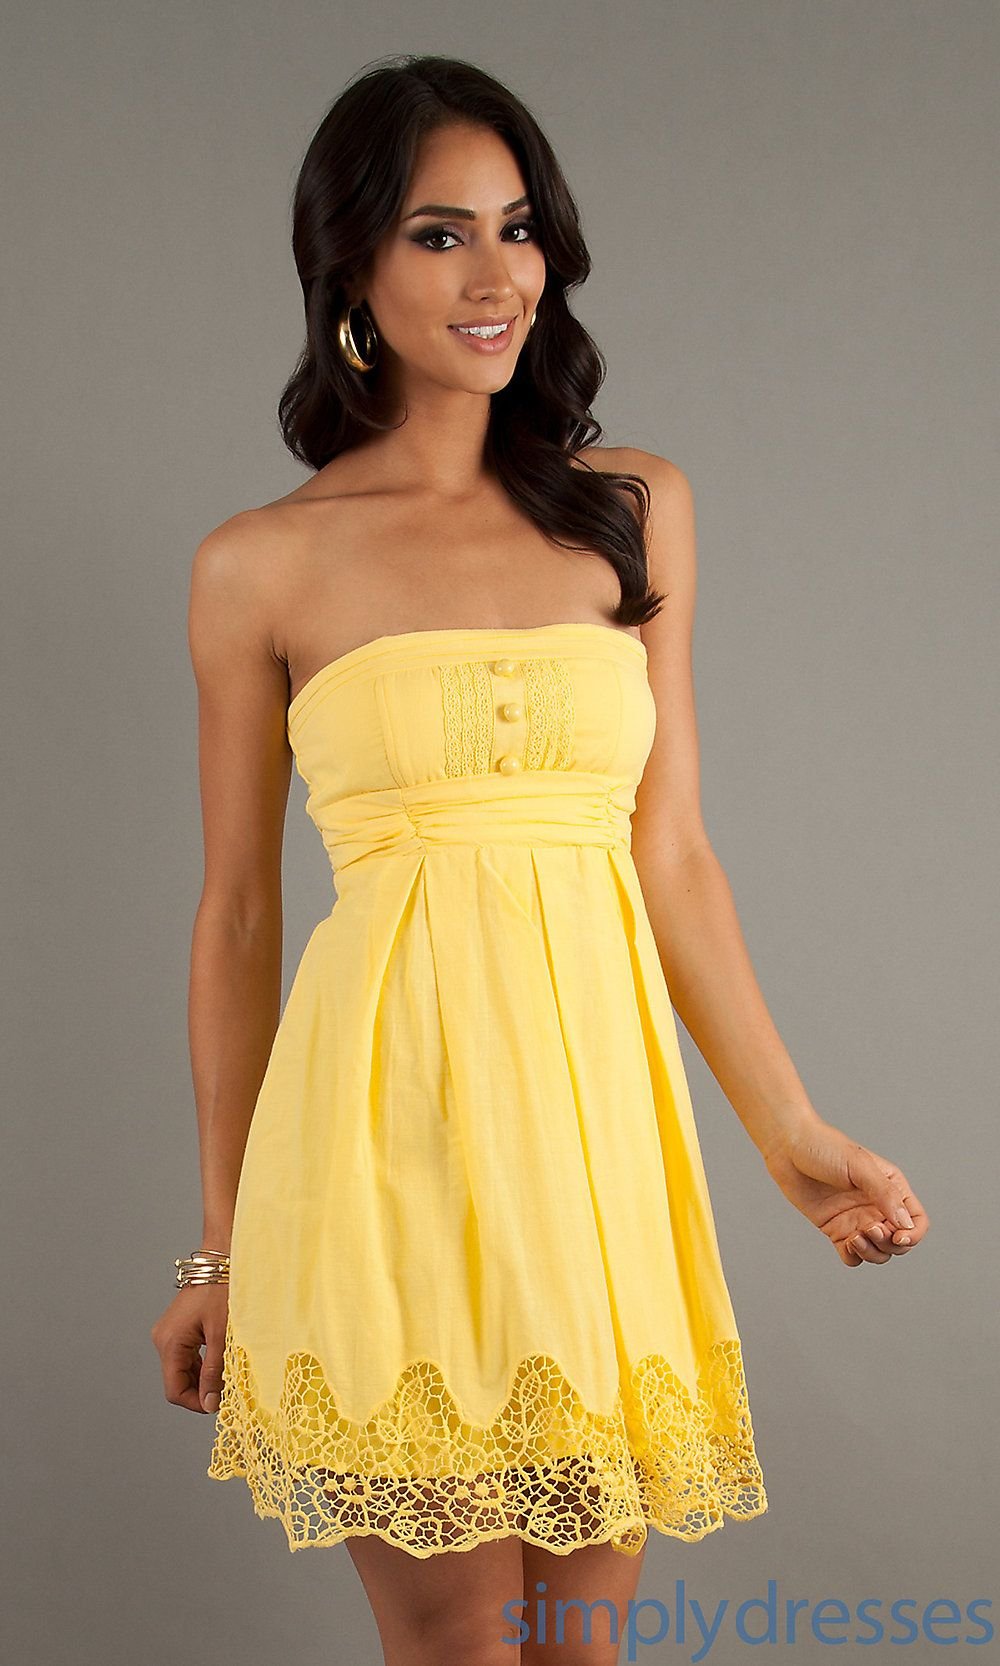 Dress Short Casual Yellow Dress Simply Dresses Time to say